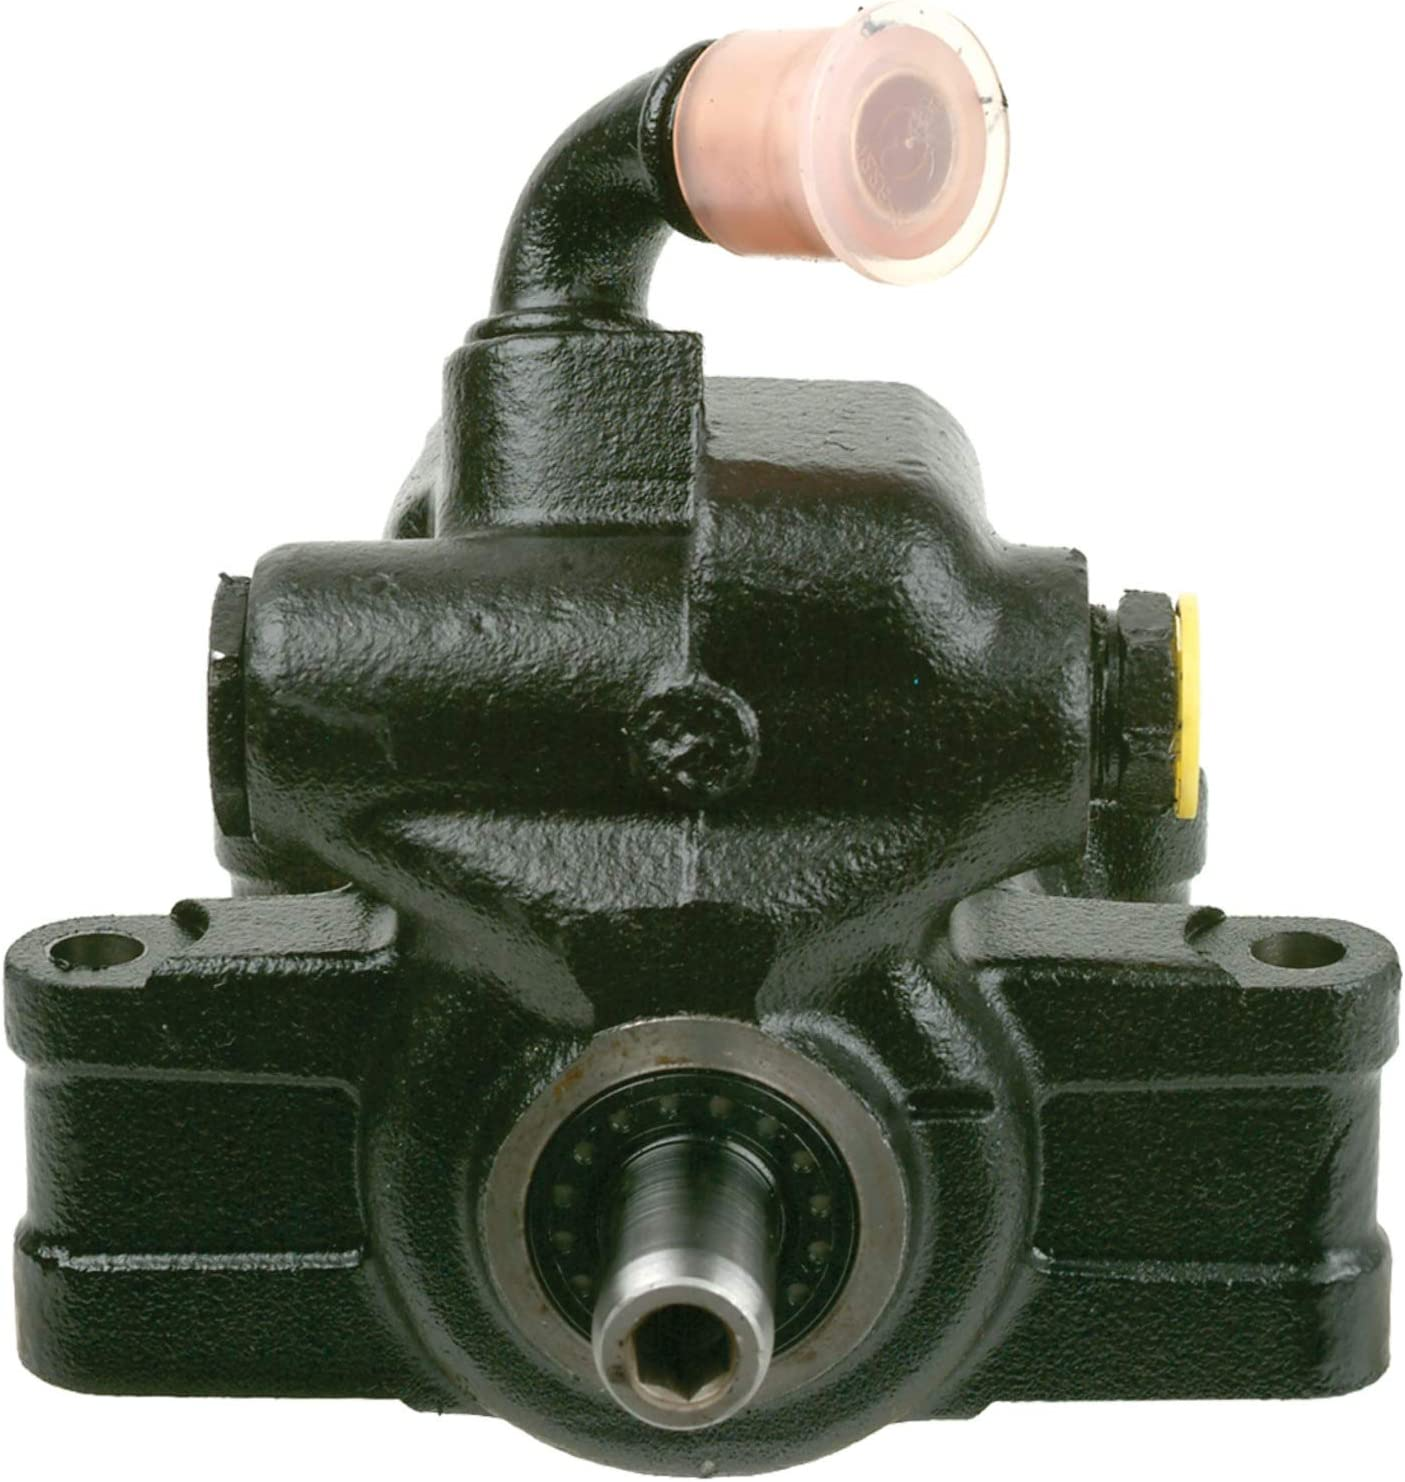 Cardone 20-322 Remanufactured Power Pump Steering without Quality Now free shipping inspection Reserv